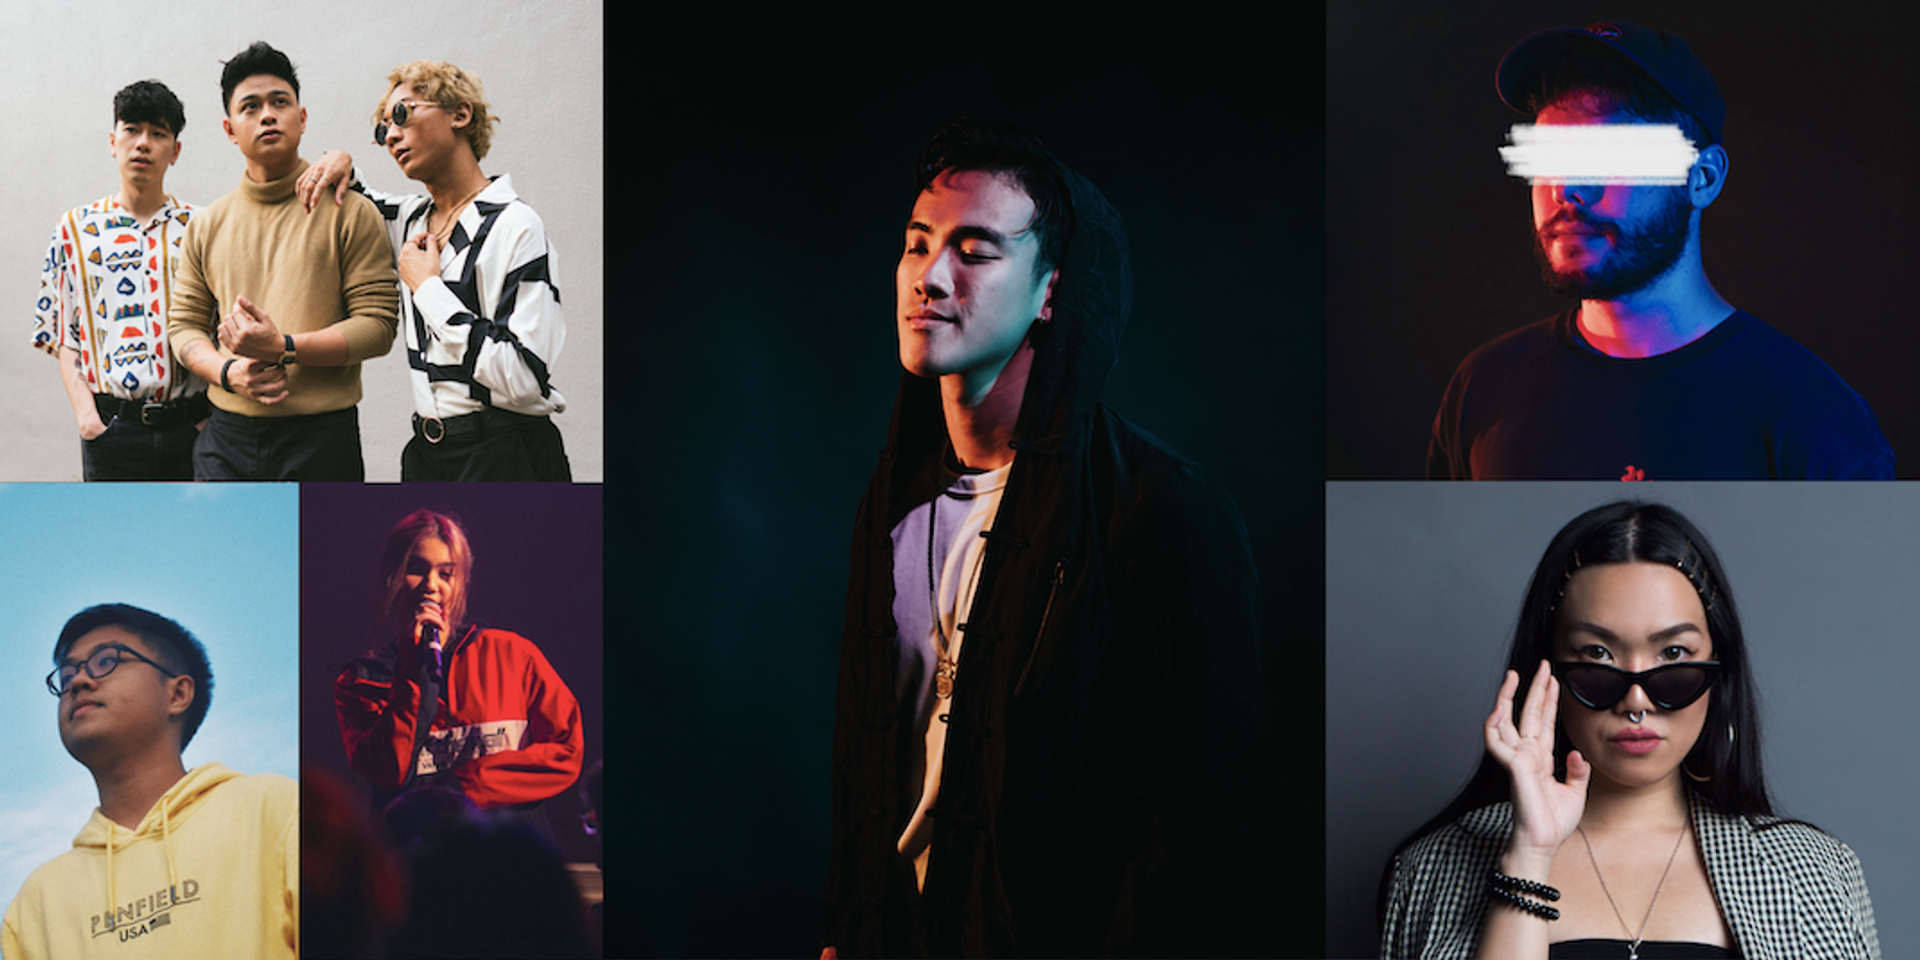 Journey through Sound Port with some favourite electronic tunes from MYRNE, Shye, YAØ and more